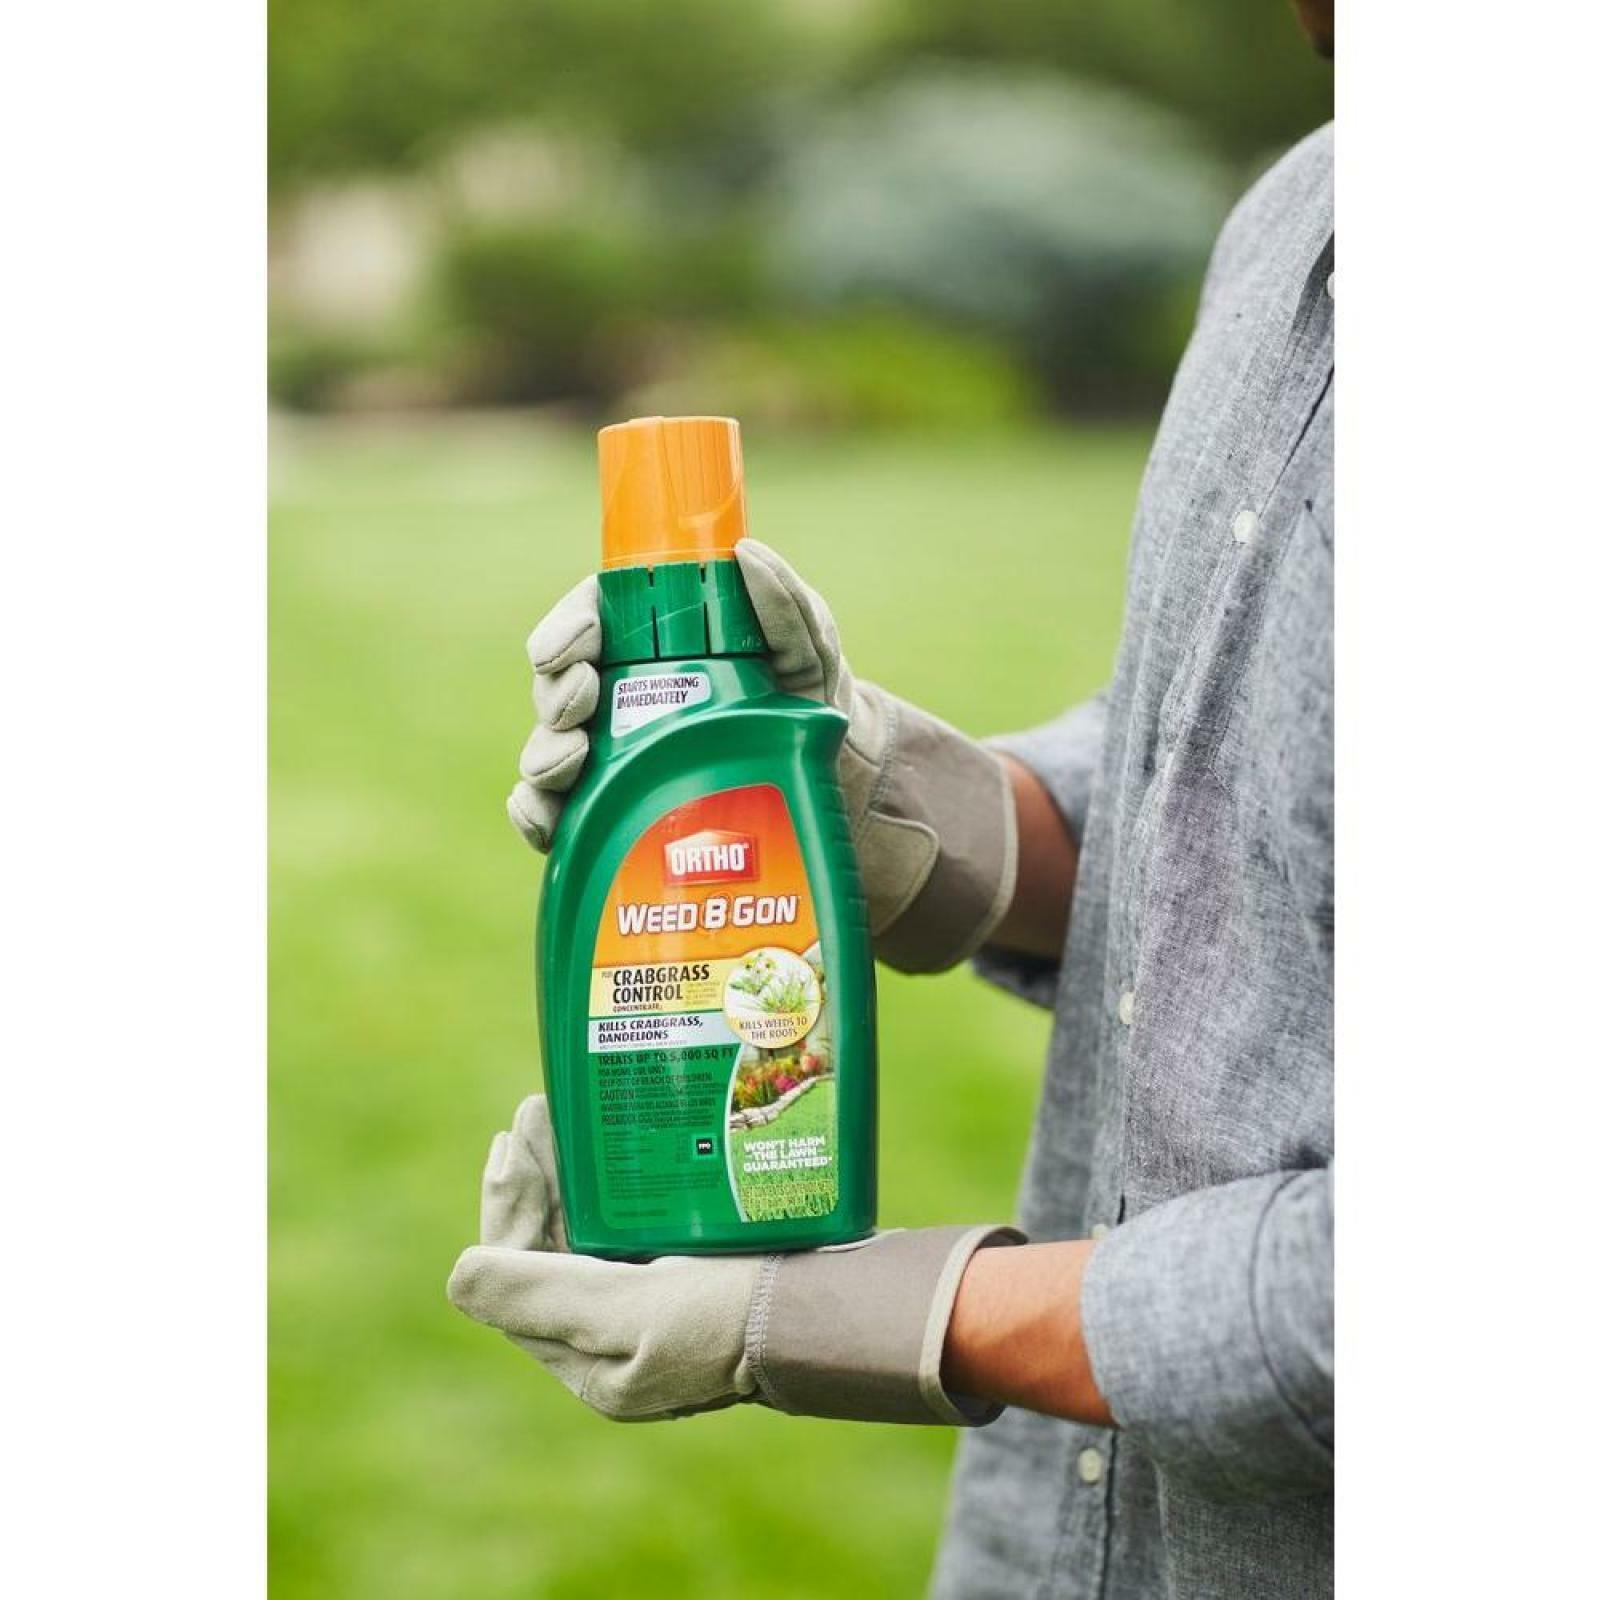 Details about Ortho Weed B Gon Max Plus Crabgrass Control Concentrate Lawn  Weed Killer 32 oz